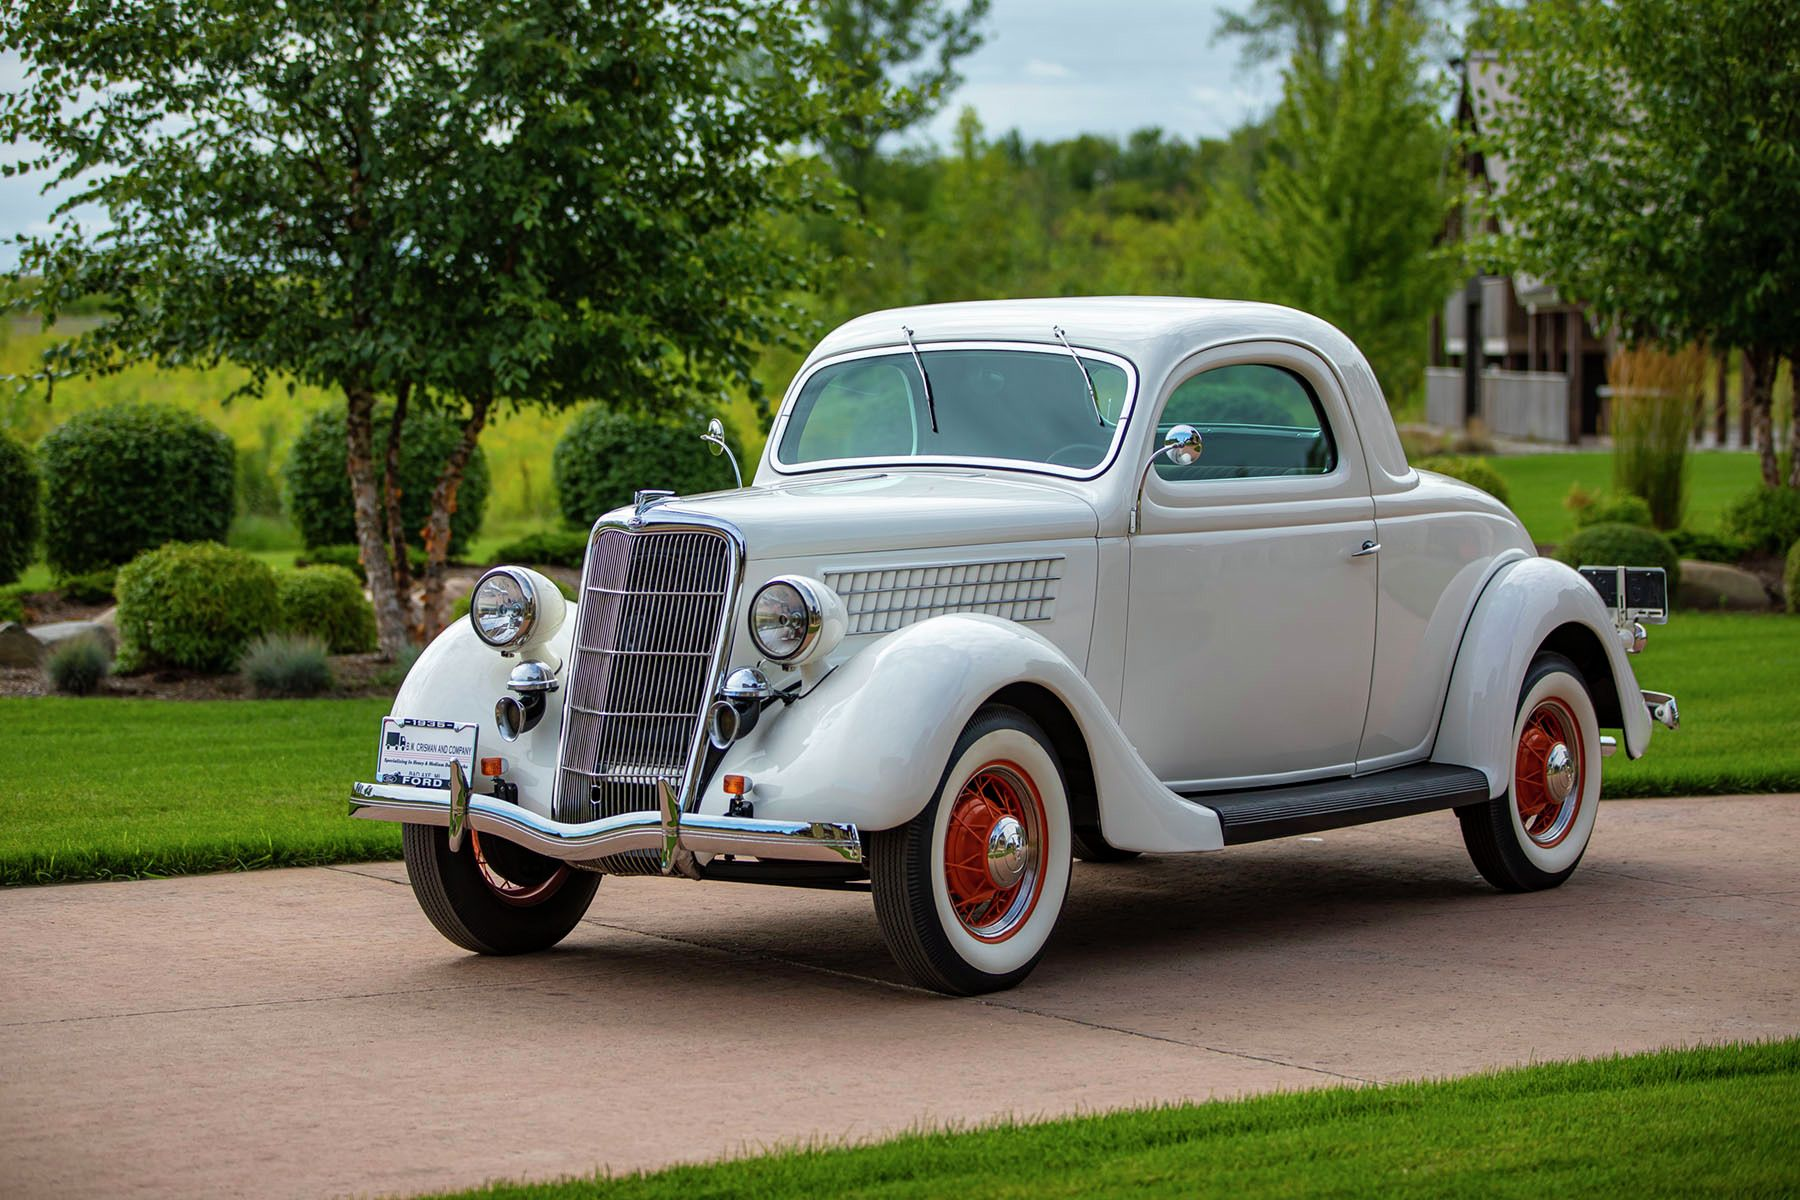 1935 Ford Model 48 3-Window Coupe